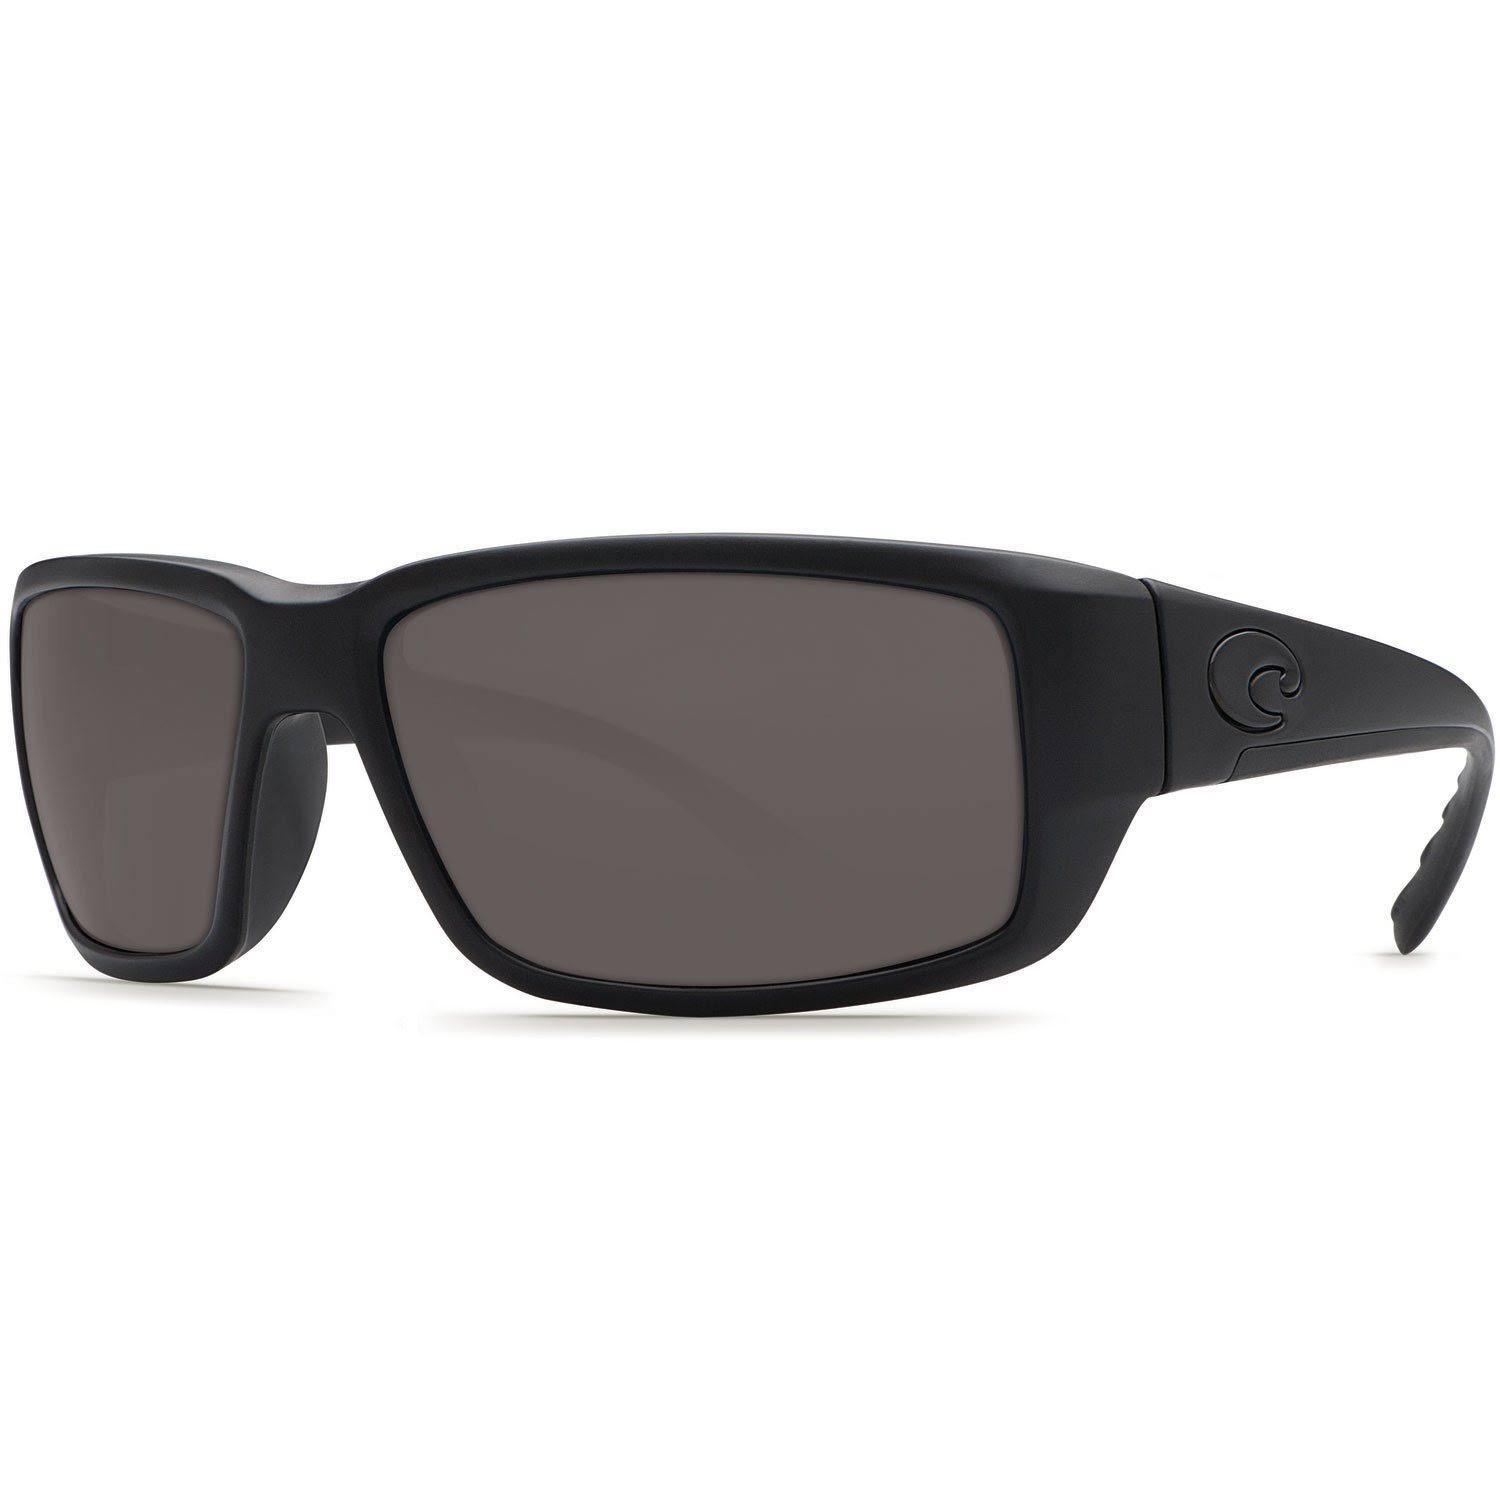 Costa Del Mar Men's Fantail 580G Polarized Sunglasses - Black/Grey, 120mm